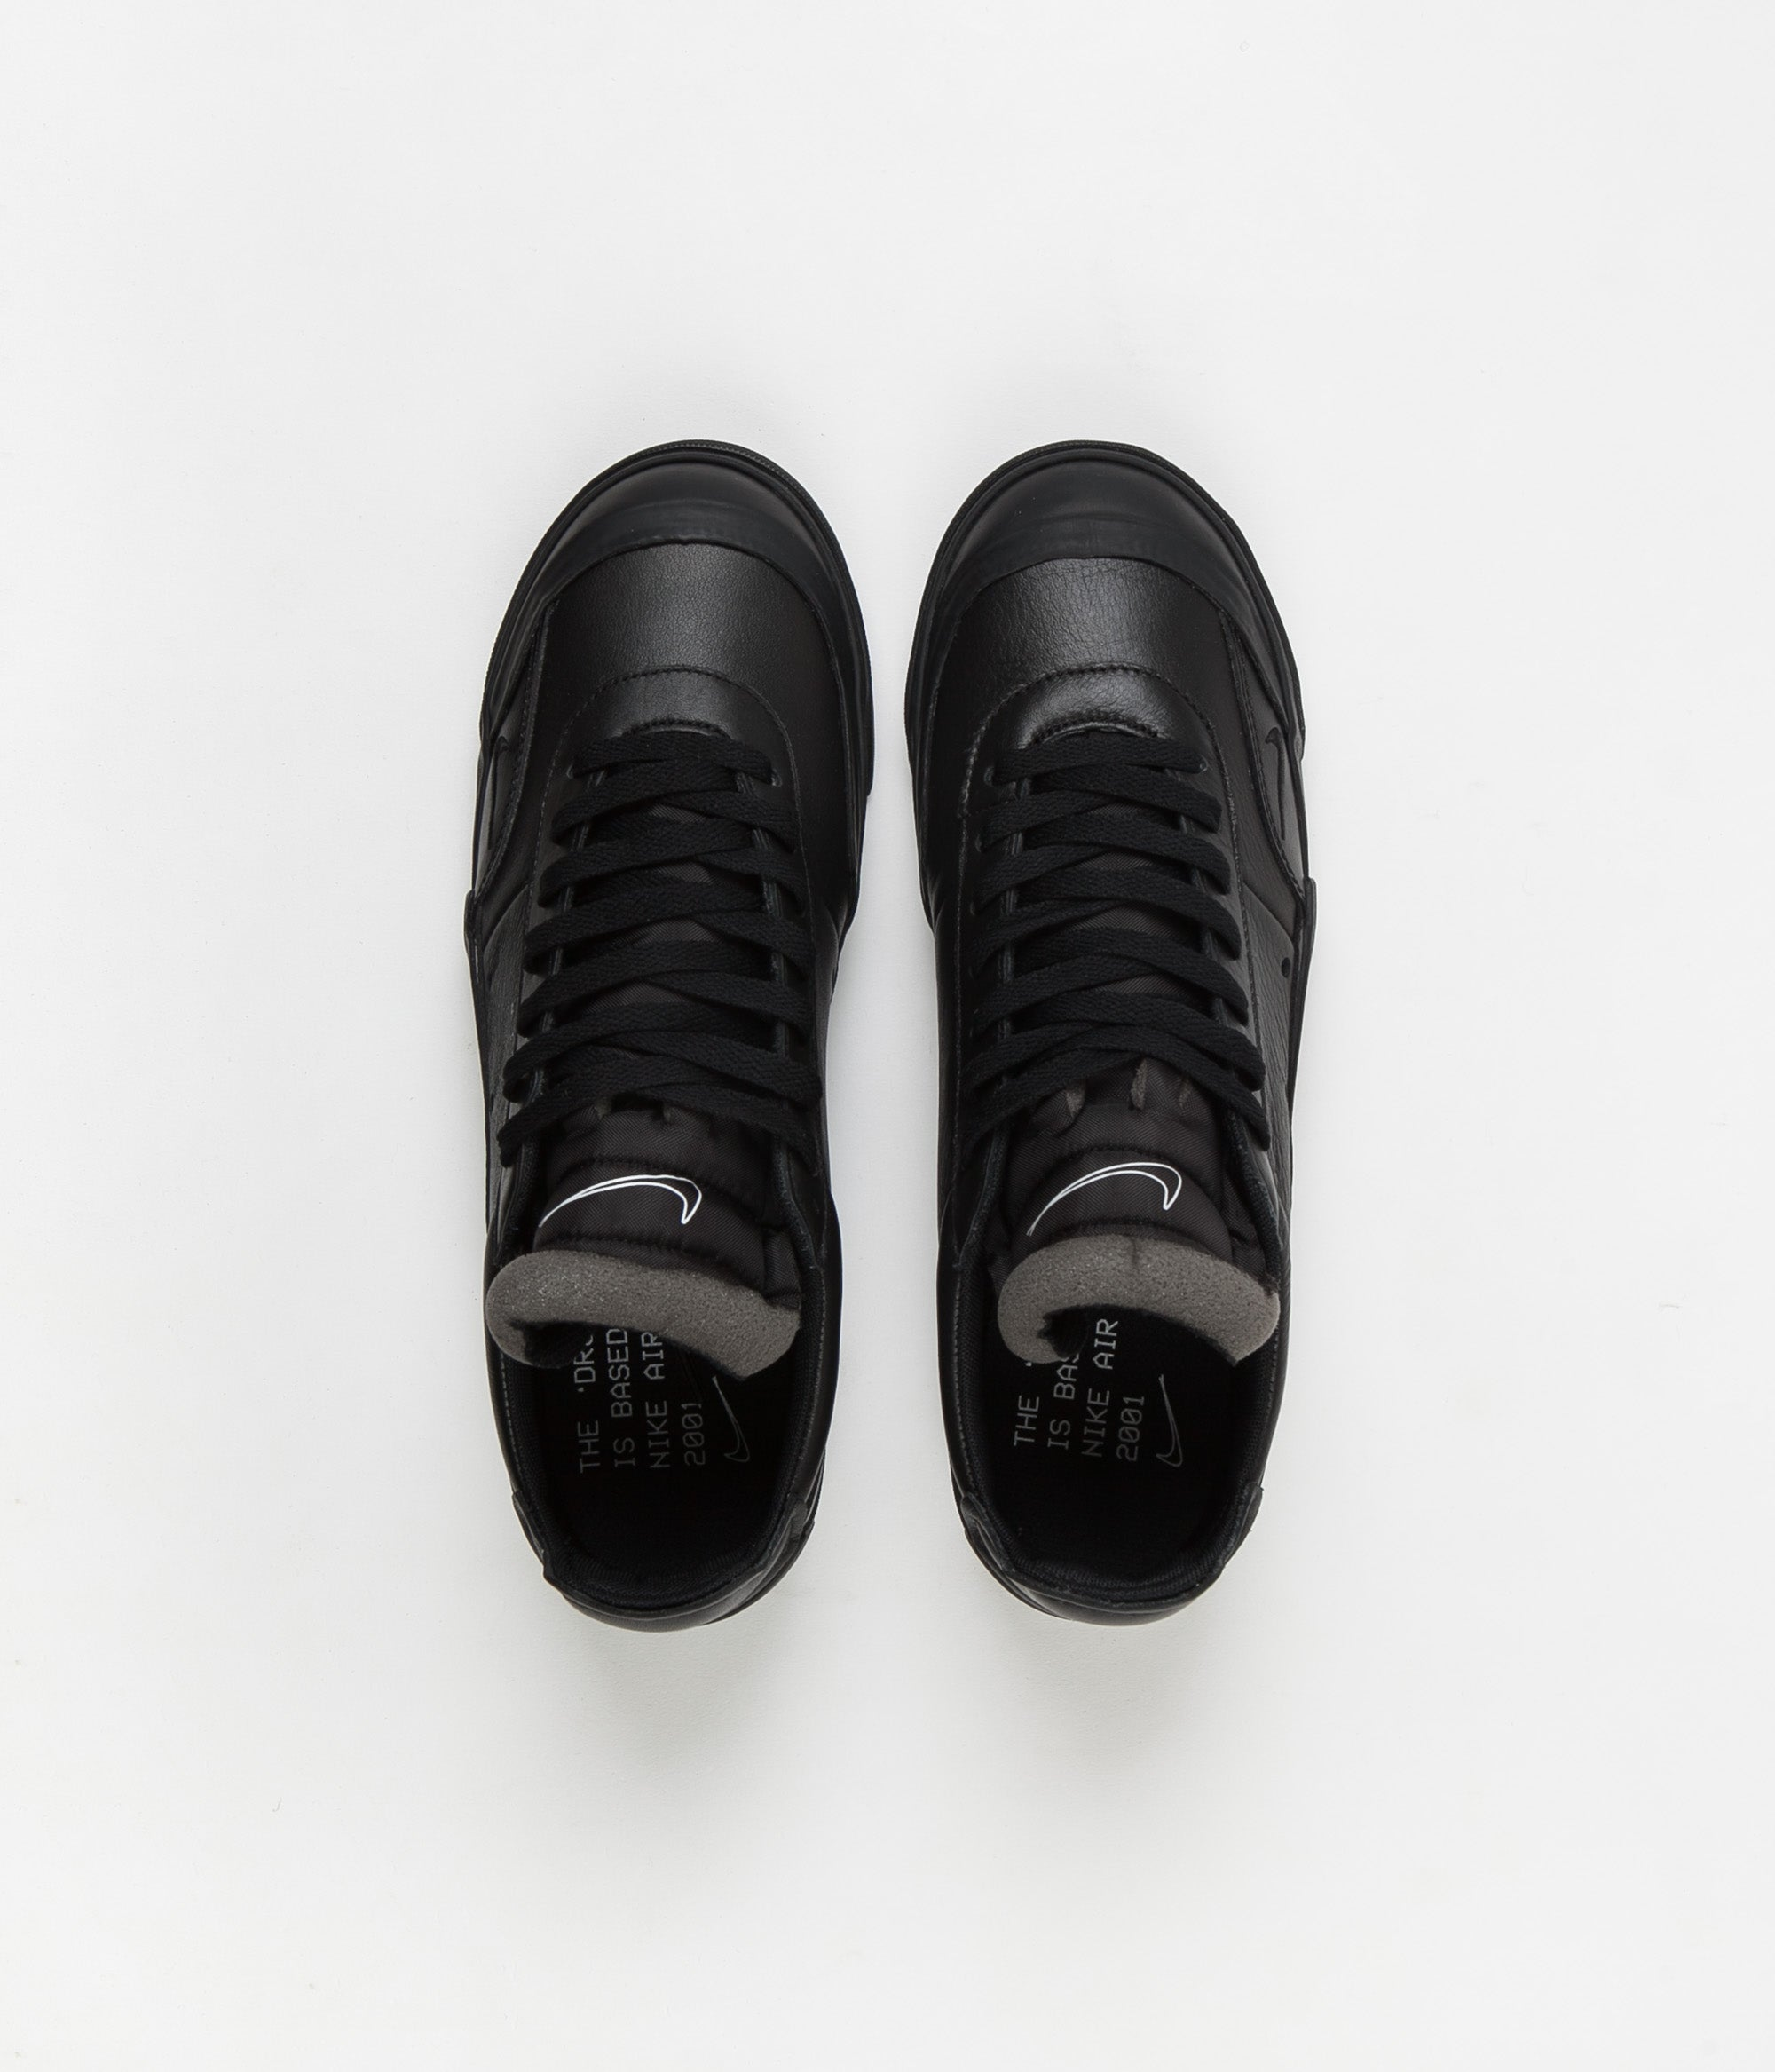 Comida Unir Ambigüedad  Nike Drop Type Premium Shoes - Black / White | Always in Colour